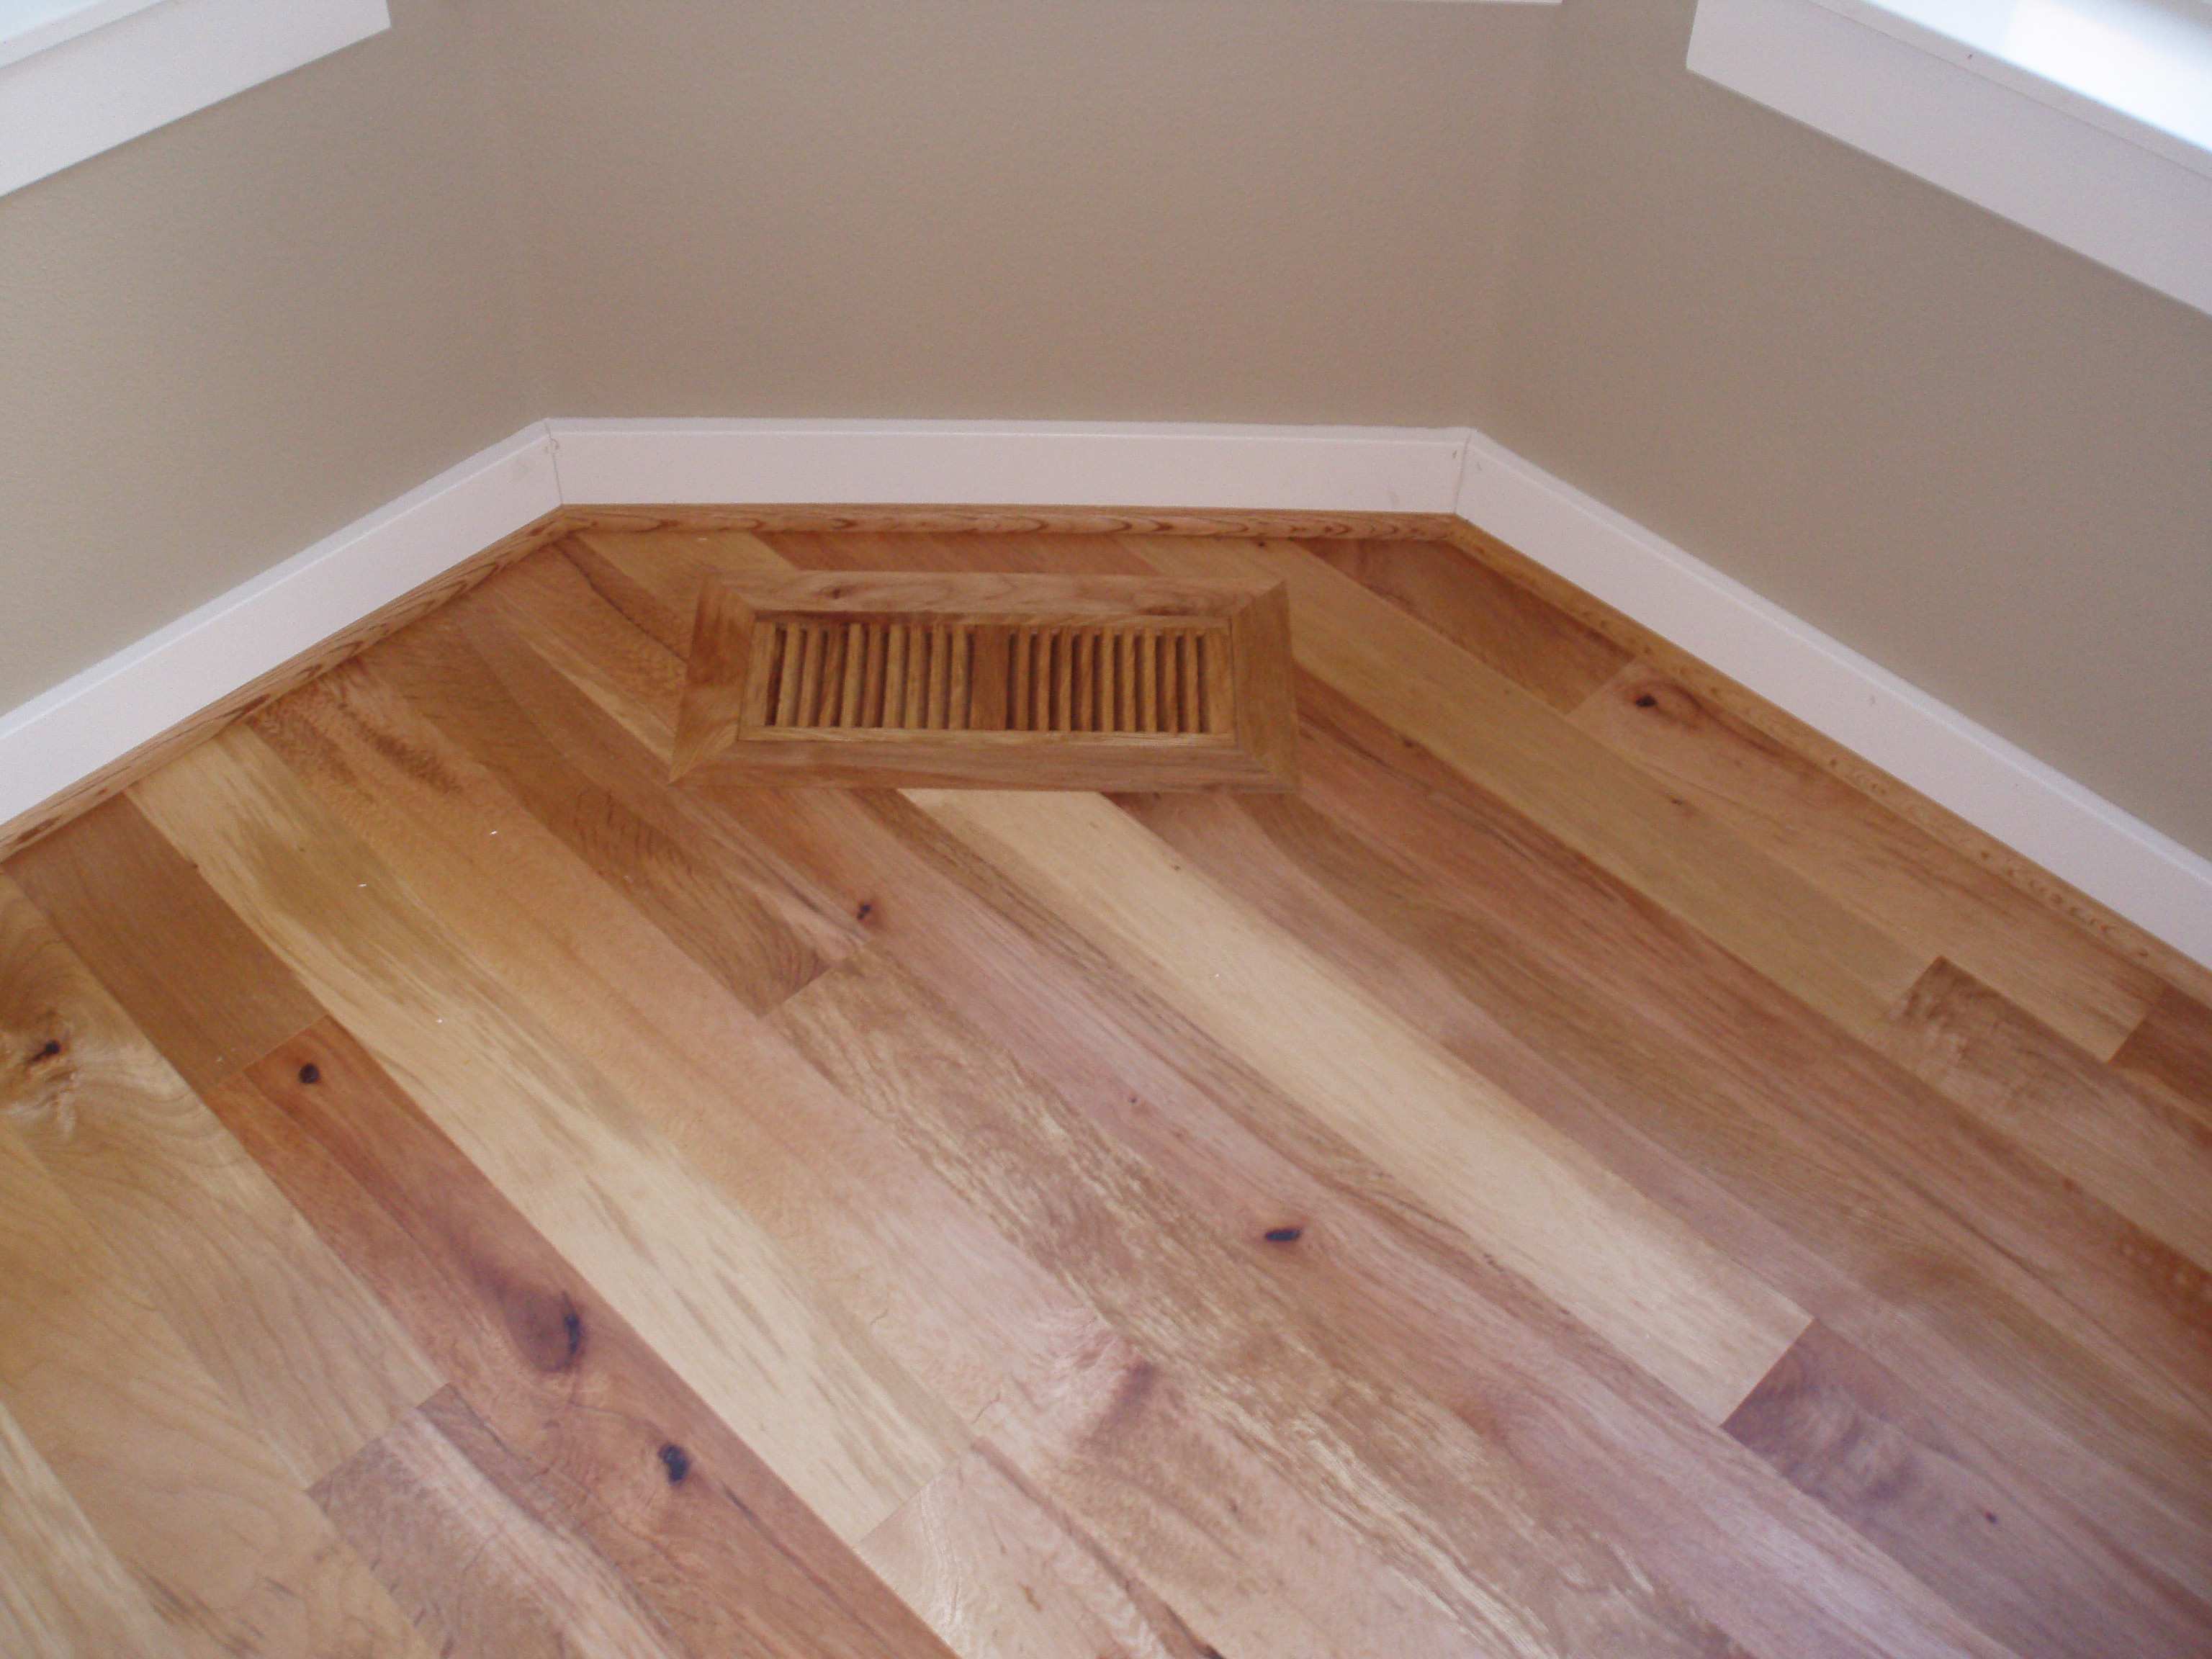 wood cec beige floors hn lg rs hardwood light hickory borders engineered natural floor flooring